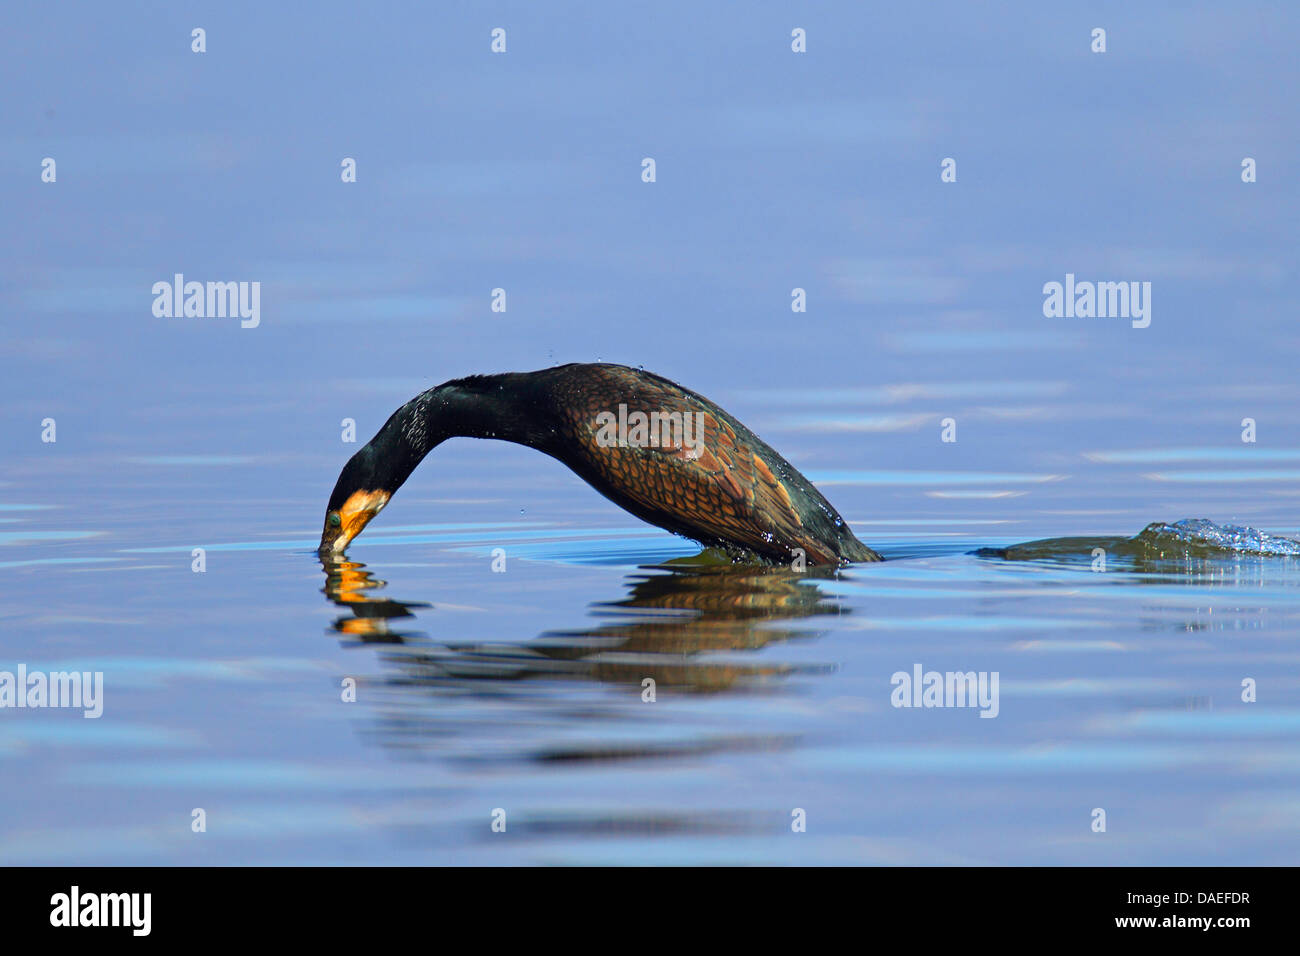 great cormorant (Phalacrocorax carbo), started diving in the water, Greece, Kerkinisee - Stock Image